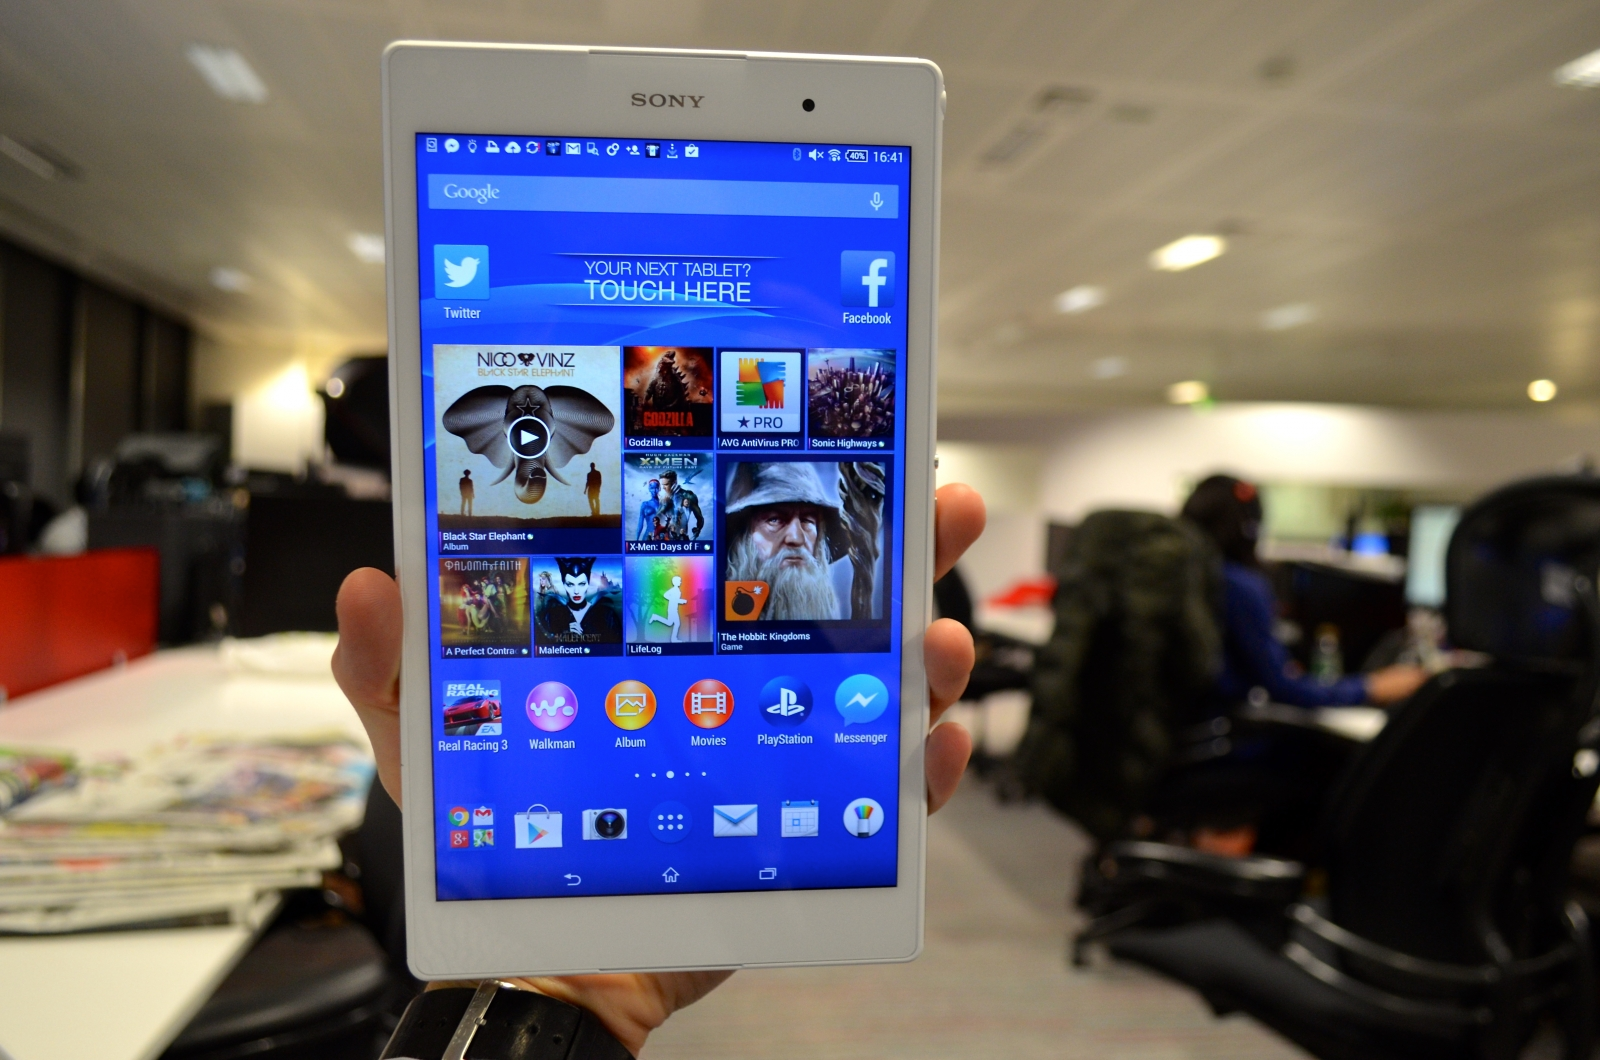 Sony Xperia Z3 Tablet Compact Review A True Rival To The Ipad Mini Seken